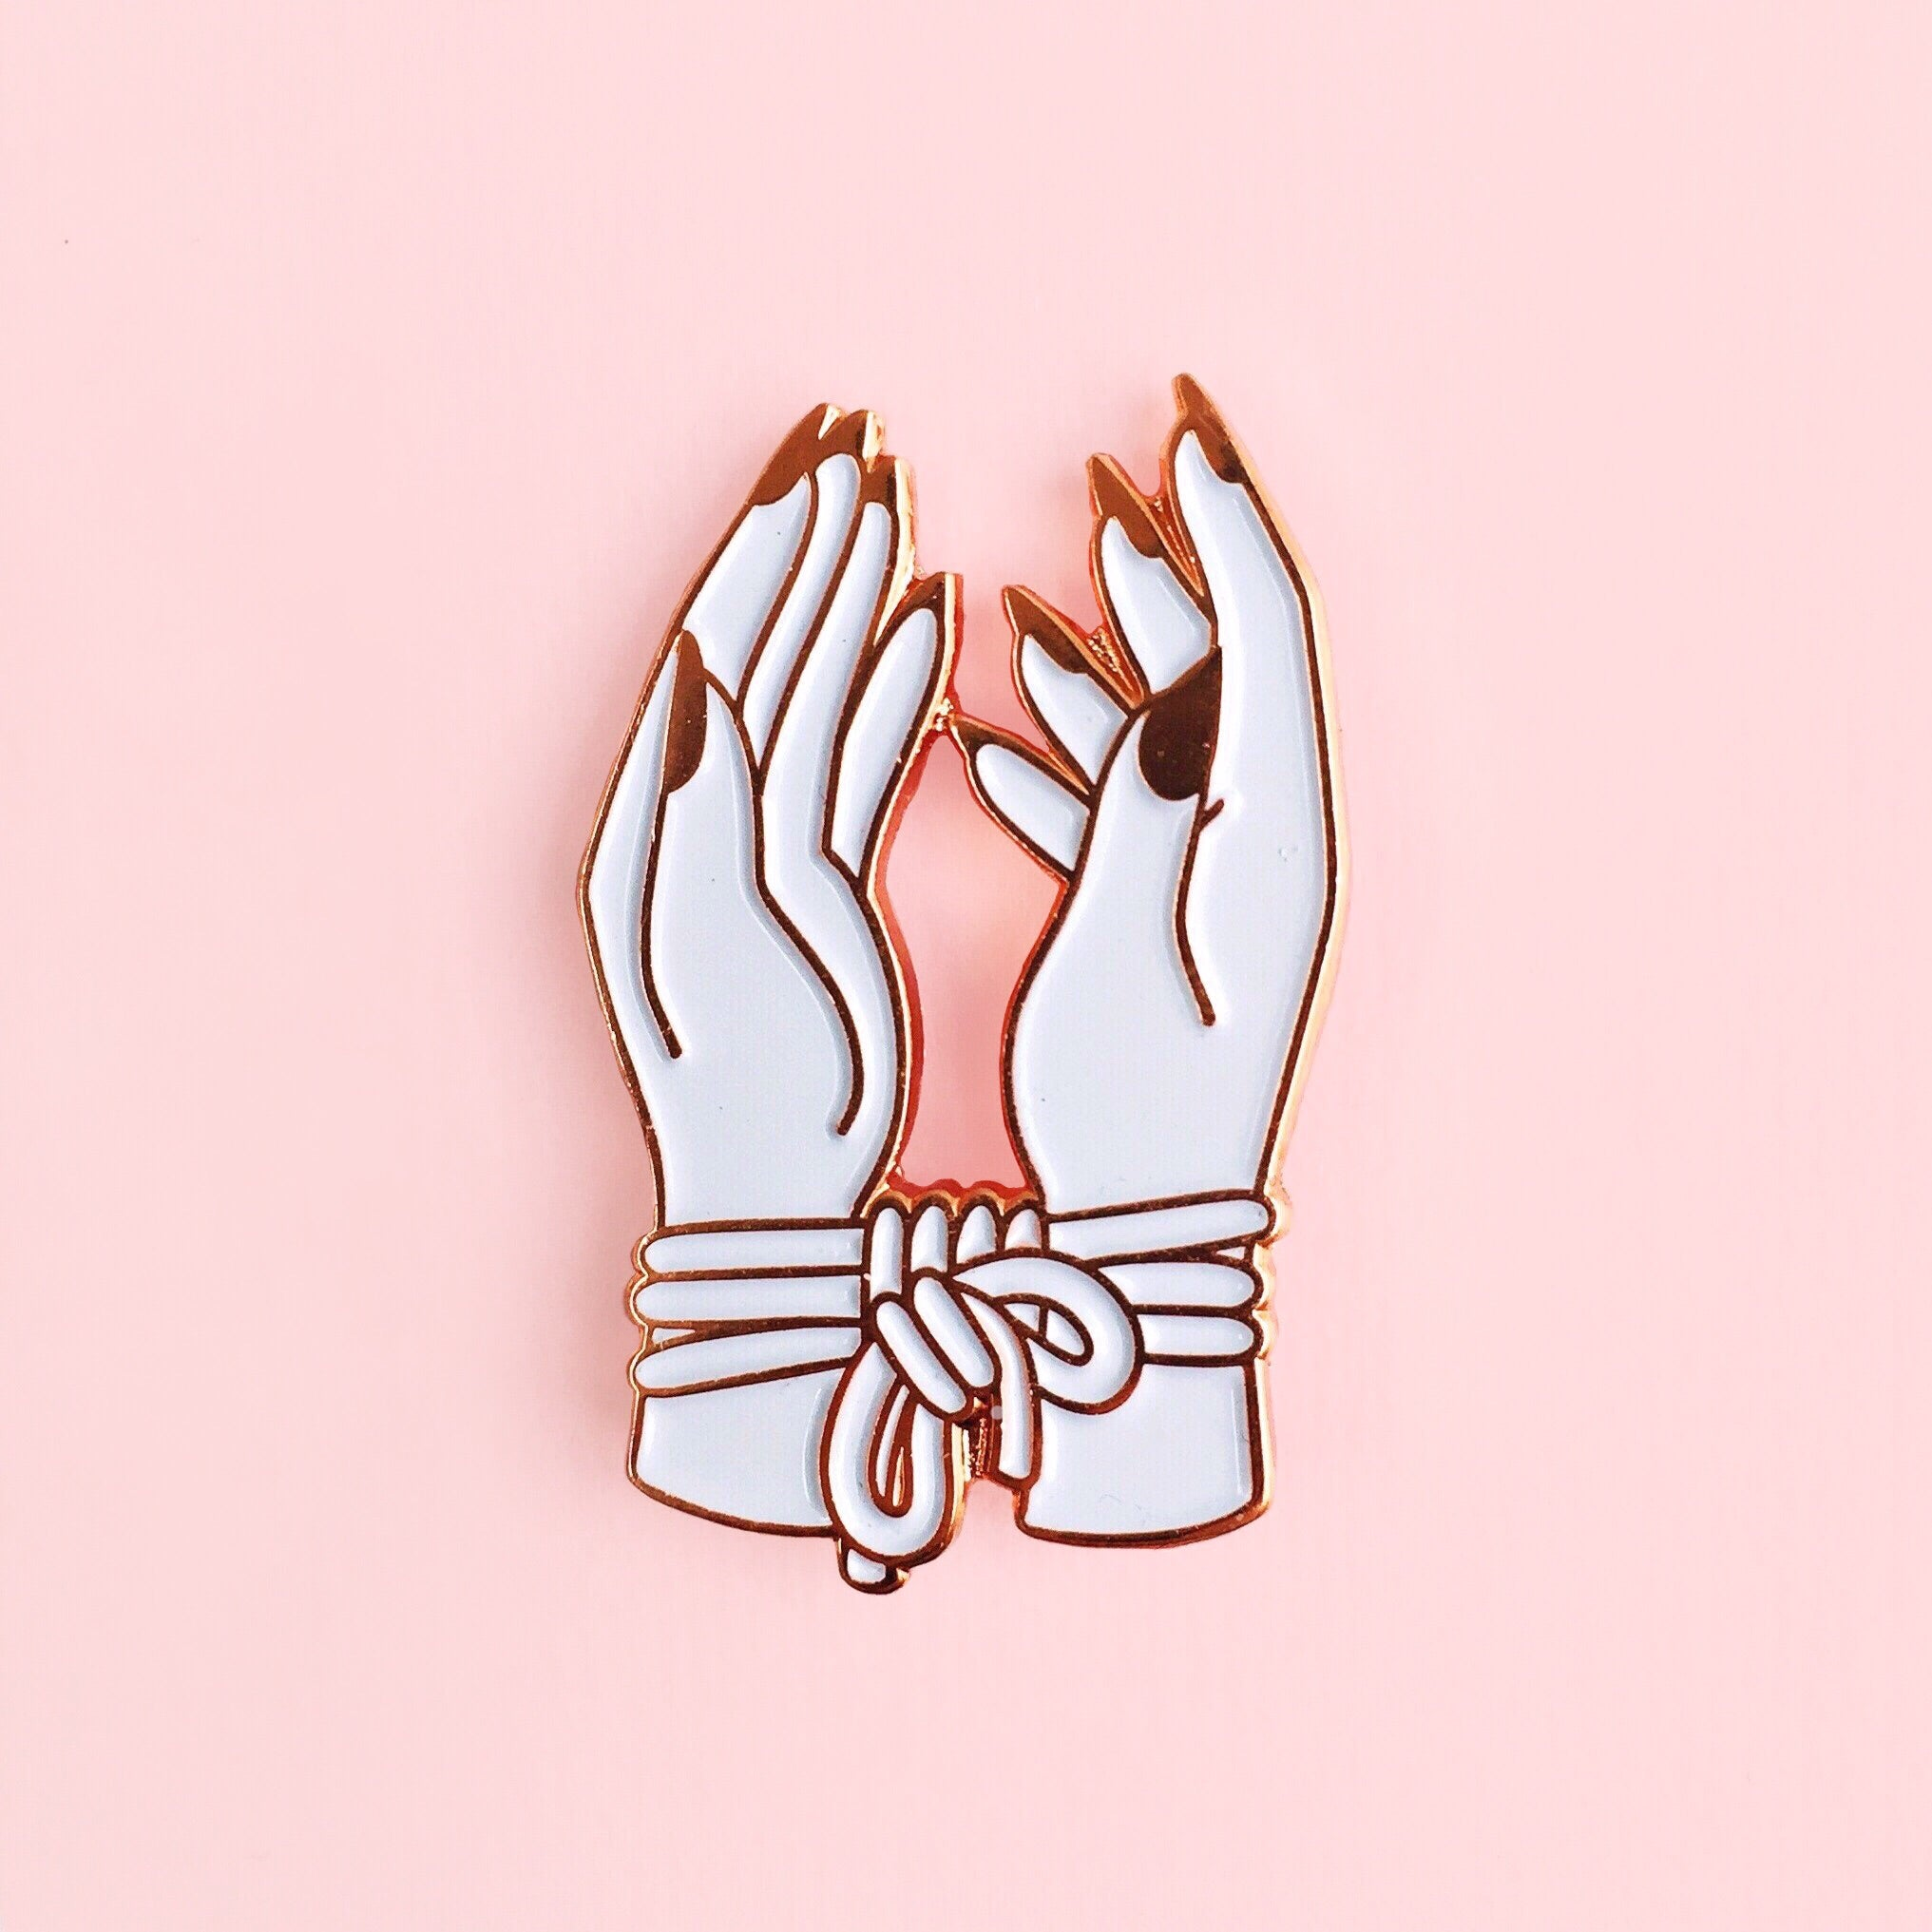 Bound hands pin